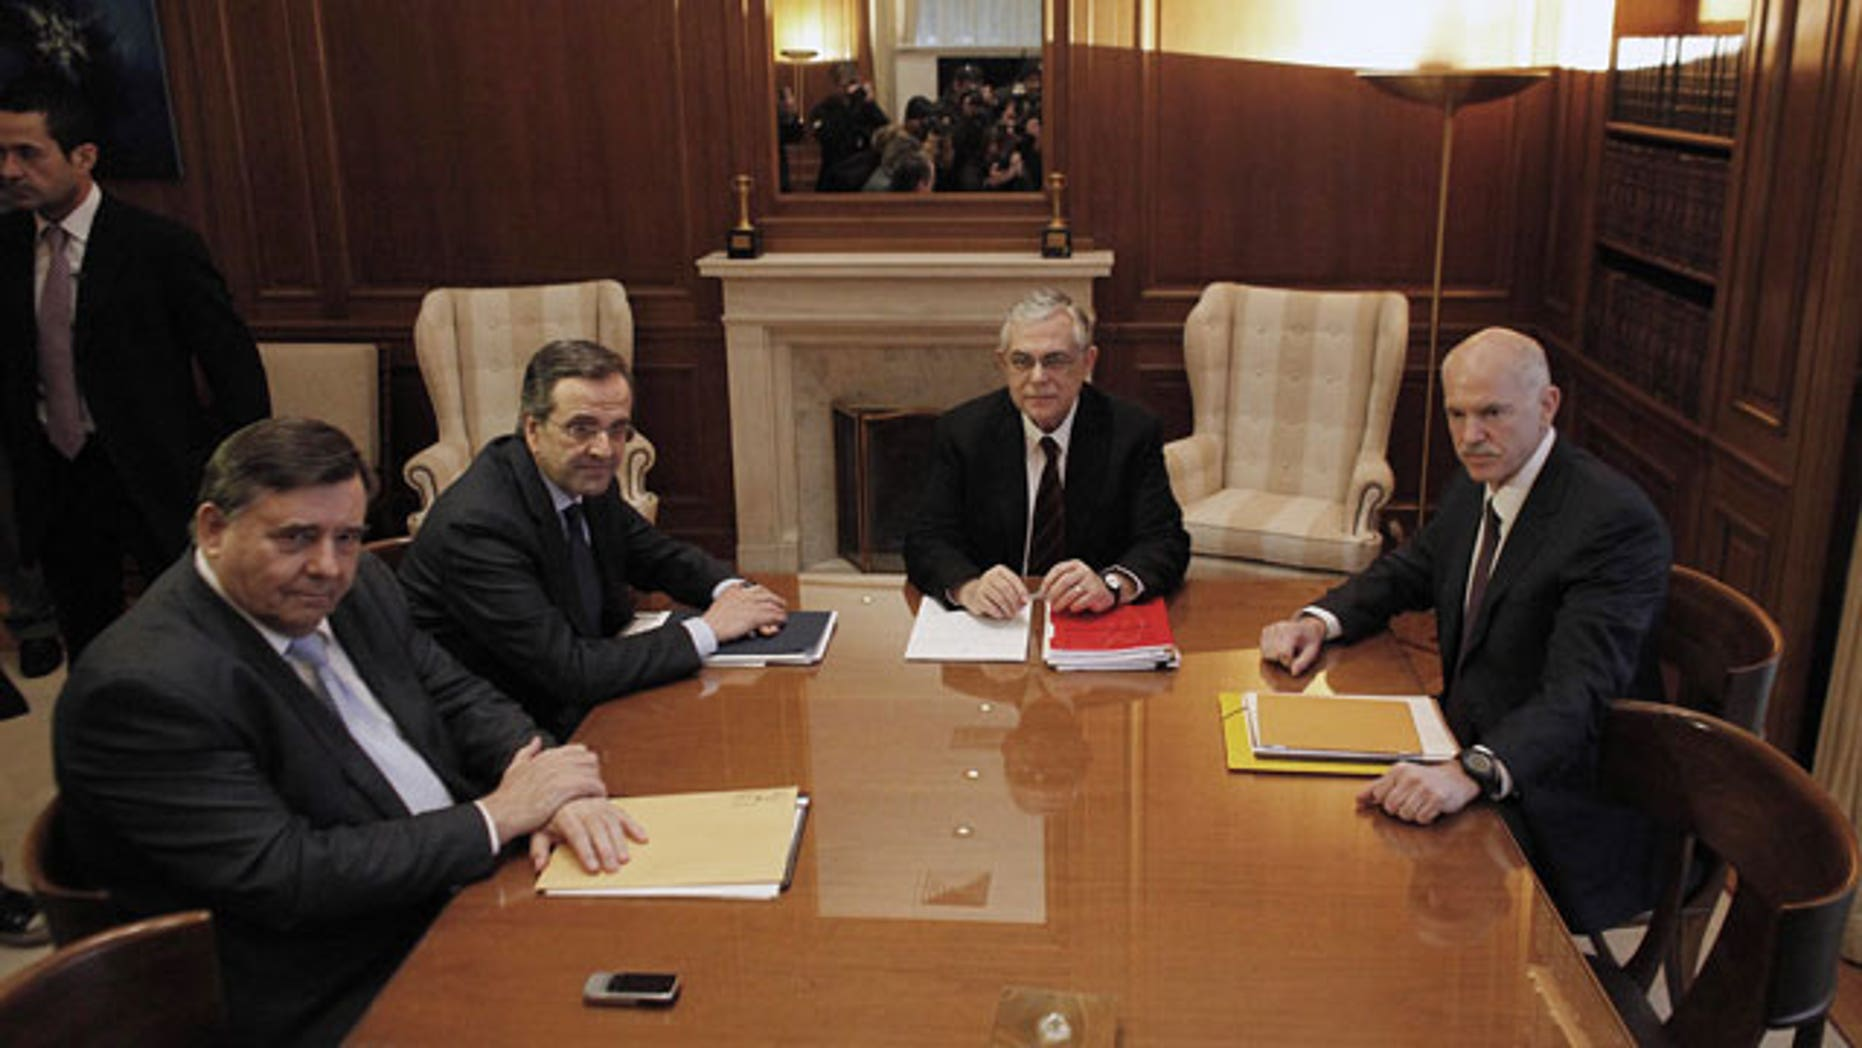 Feb. 4, 2012: The leaders of the three parties backing Greece's coalition government, George Papandreou, right, Giorgos Karatzaferis, left, and Antonis Samaras, 2nd left, meet with Prime Minister Lucas Papademos, 2nd from left, in Athens.